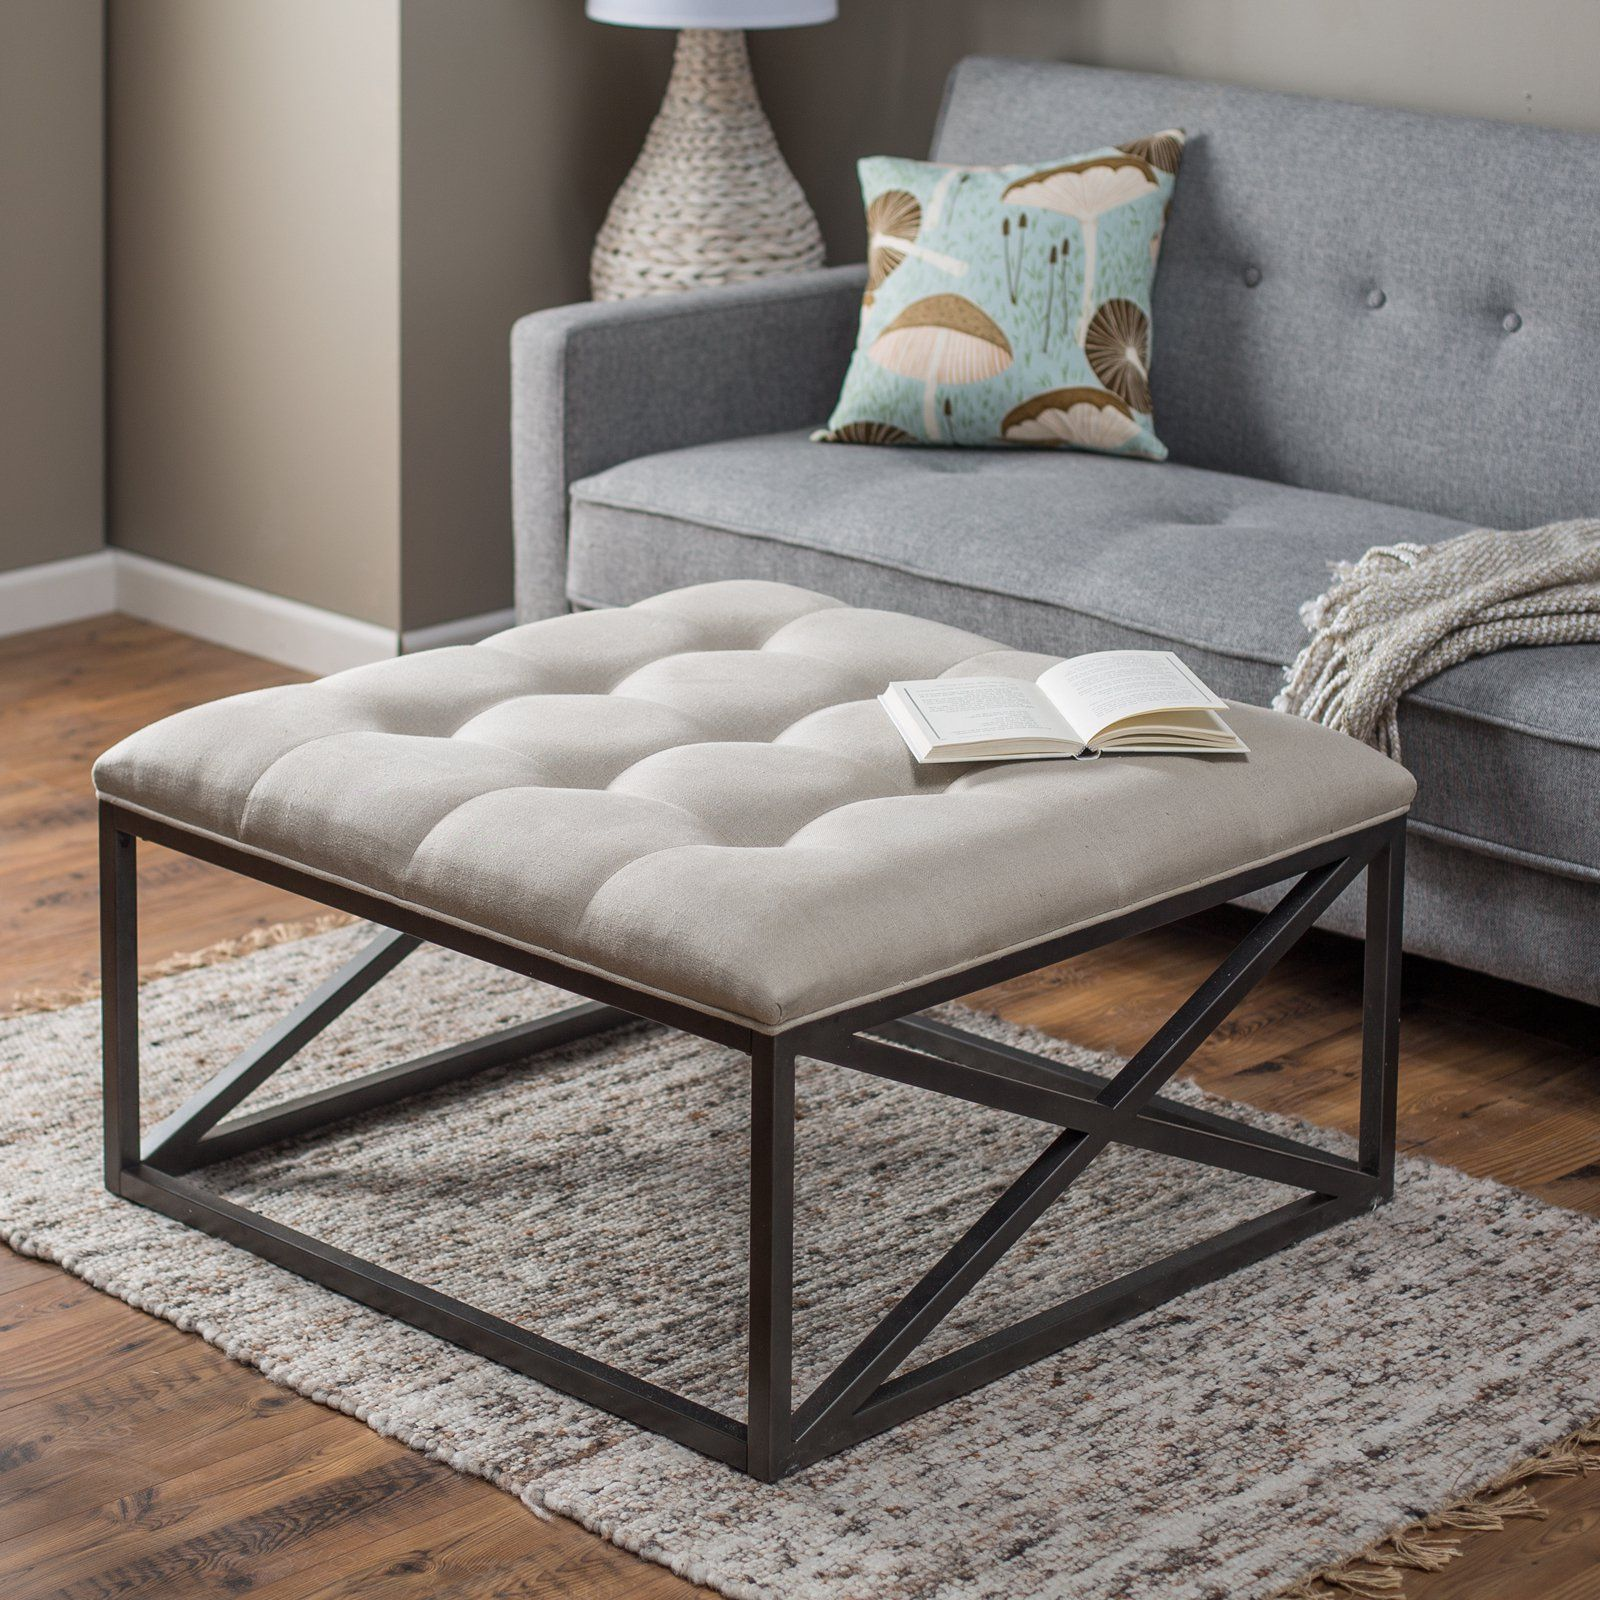 Belson Tufted Ottoman Upholstered Coffee Table